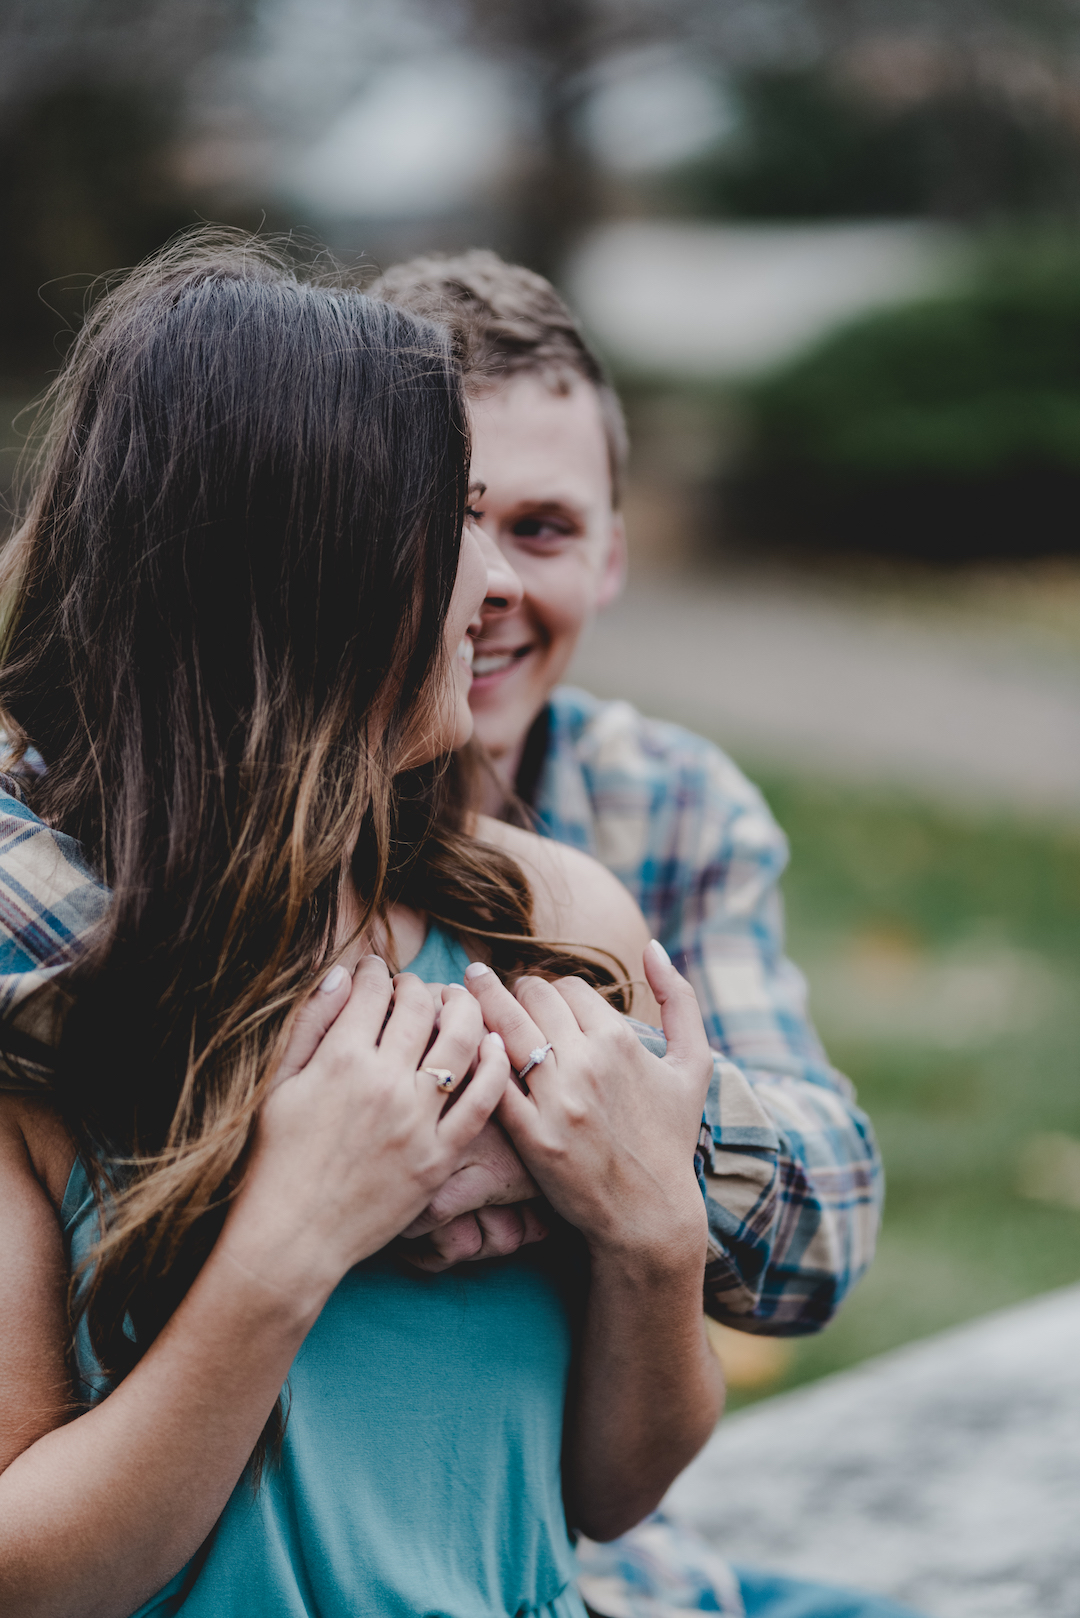 Cozy Chicago Lake Forest engagement session captured by Jenn Marie Photography. See more engagement photo ideas at CHItheeWED.com!